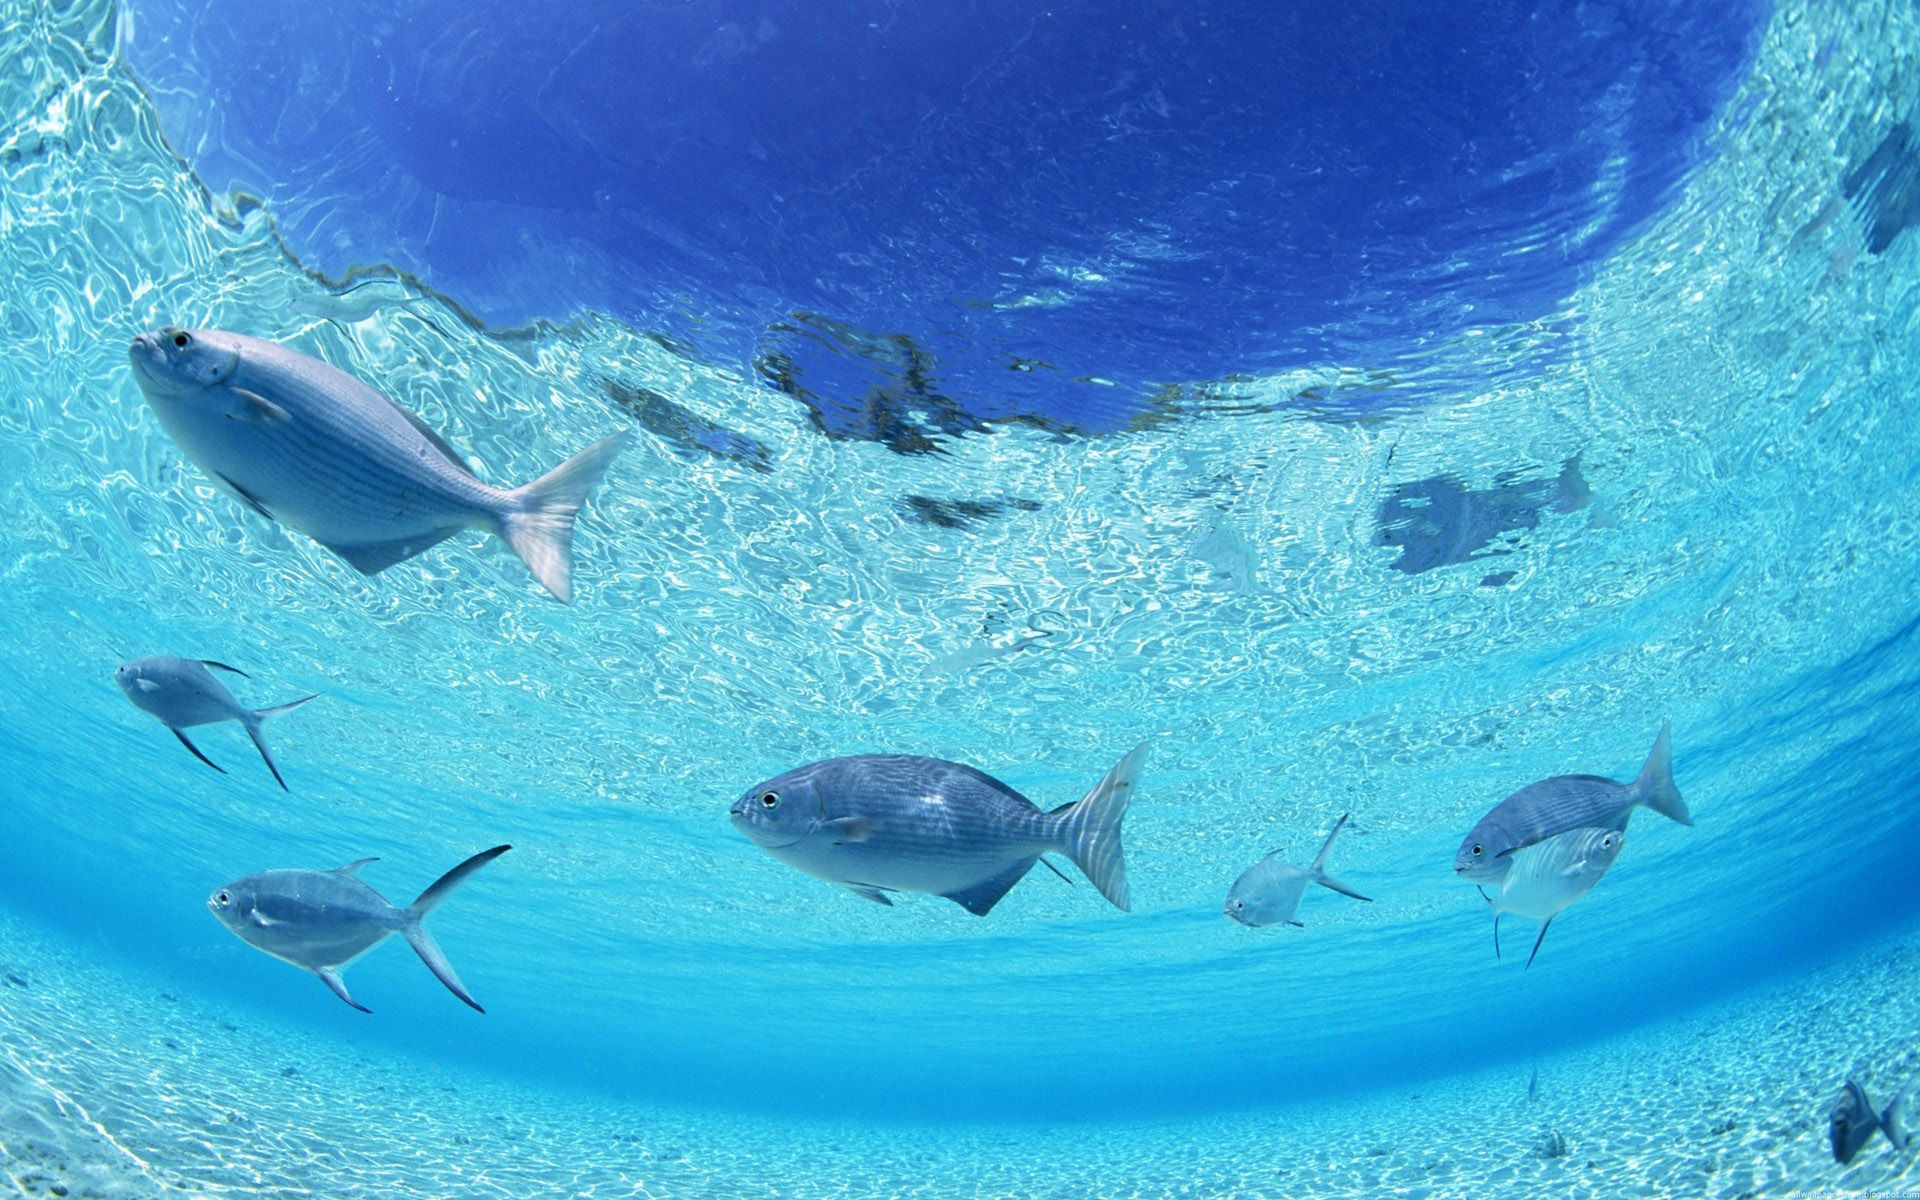 37528 download wallpaper Animals, Fishes screensavers and pictures for free